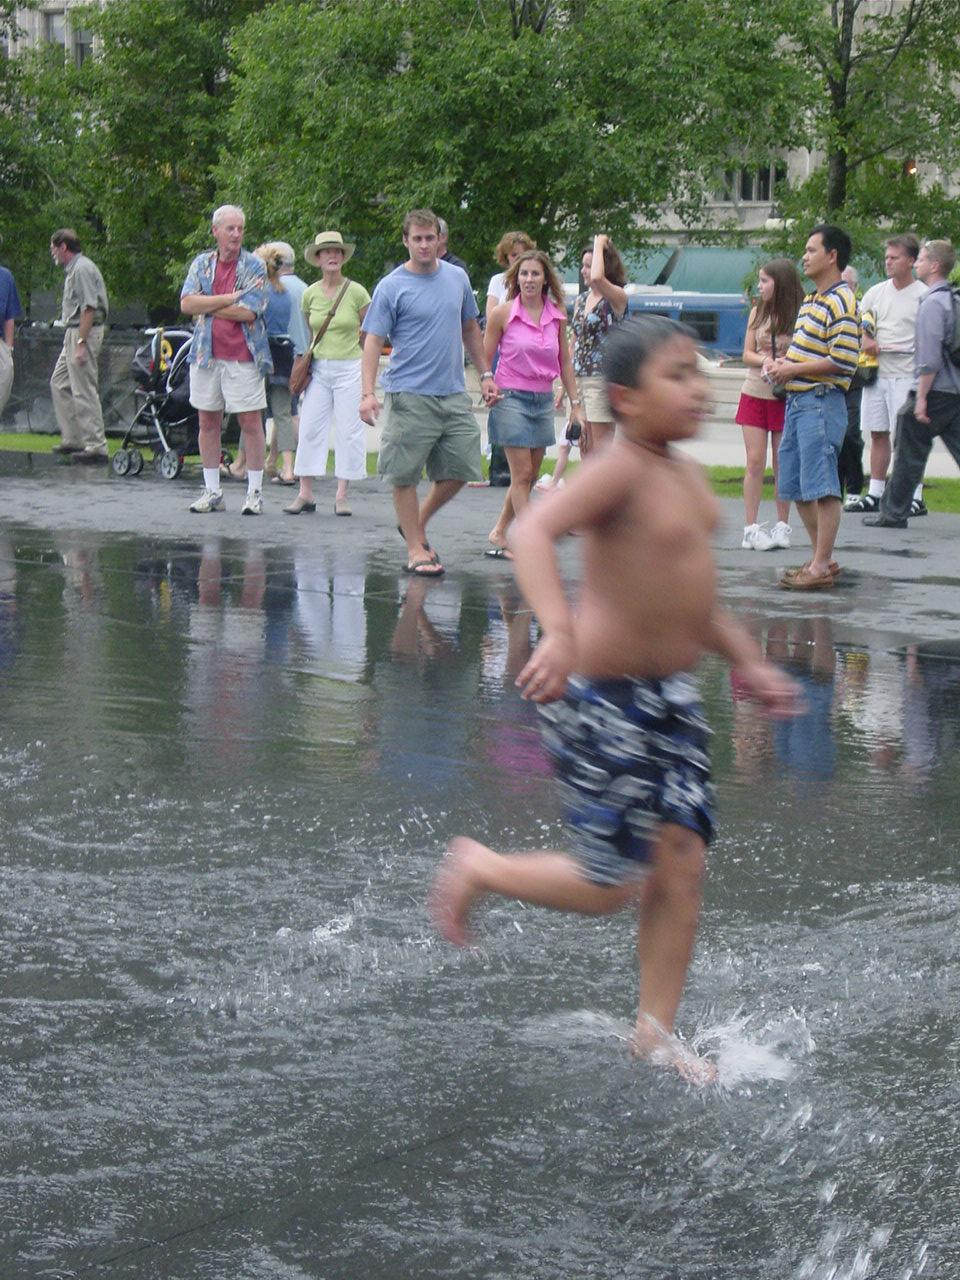 Crown Fountain, a child plays in the reflecting pool, July 22, 2004